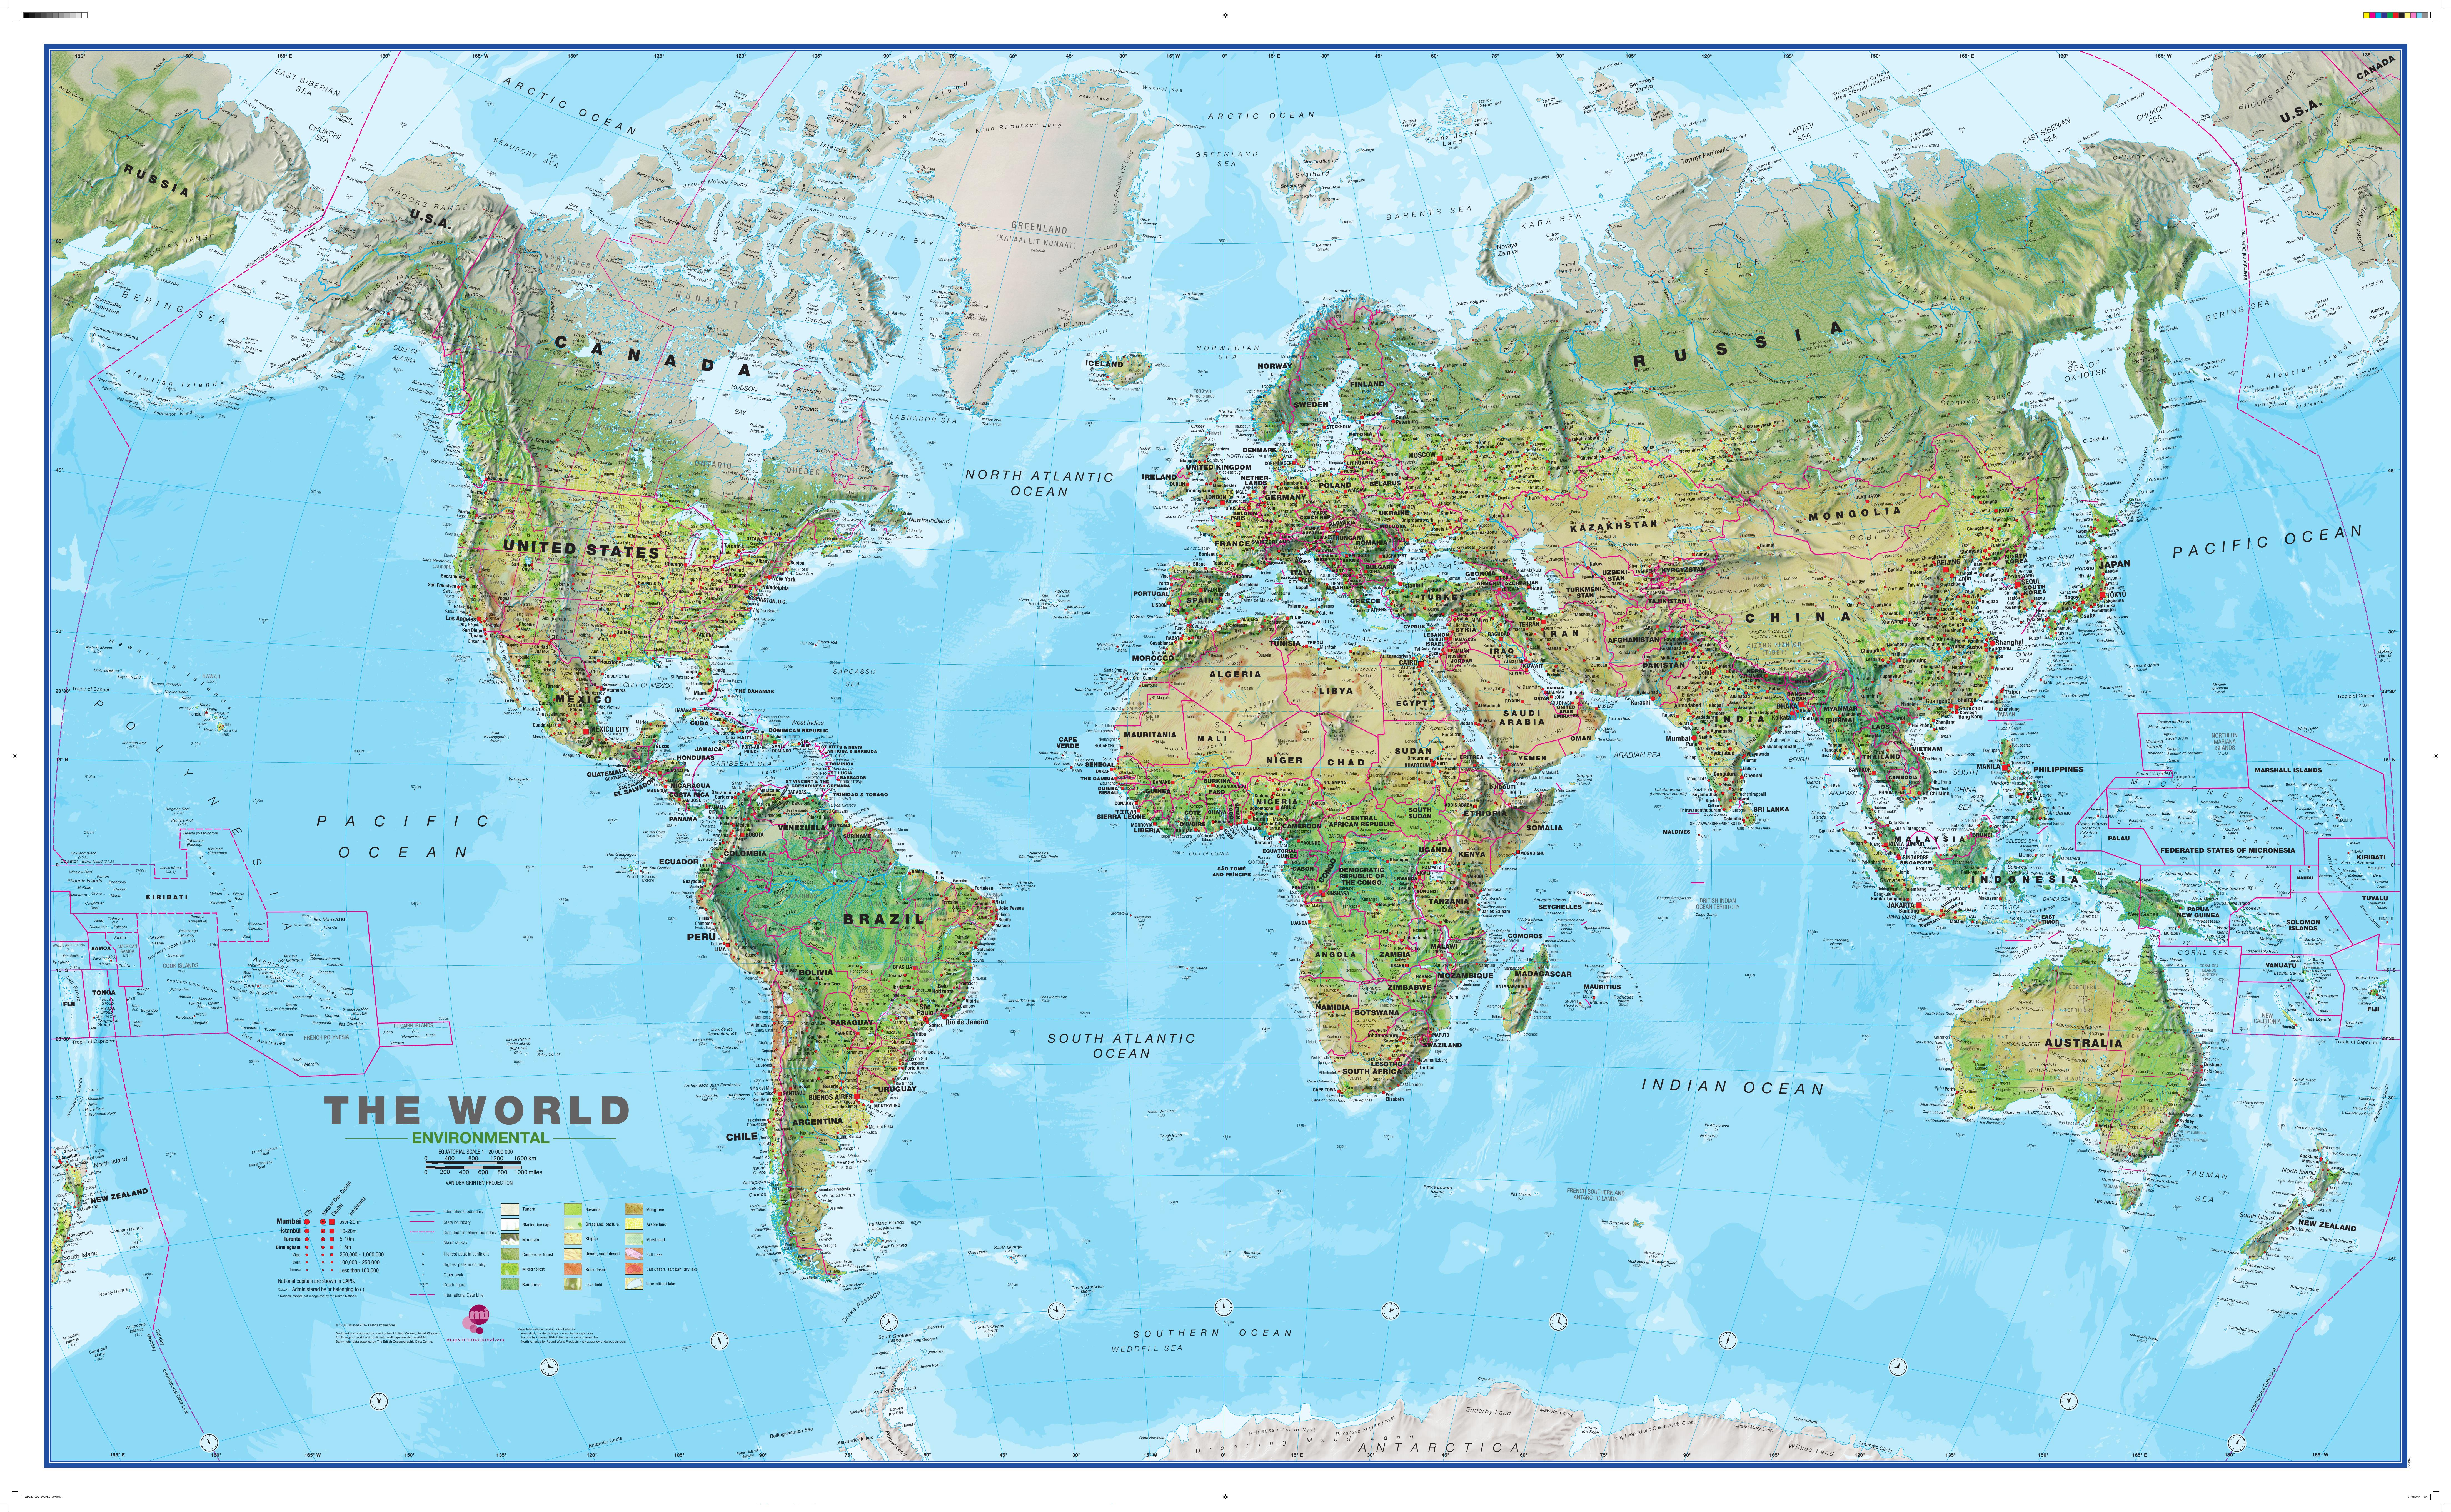 Physical World Map 1:20 Mio 198 x 122cm - Physical World Map - World Map